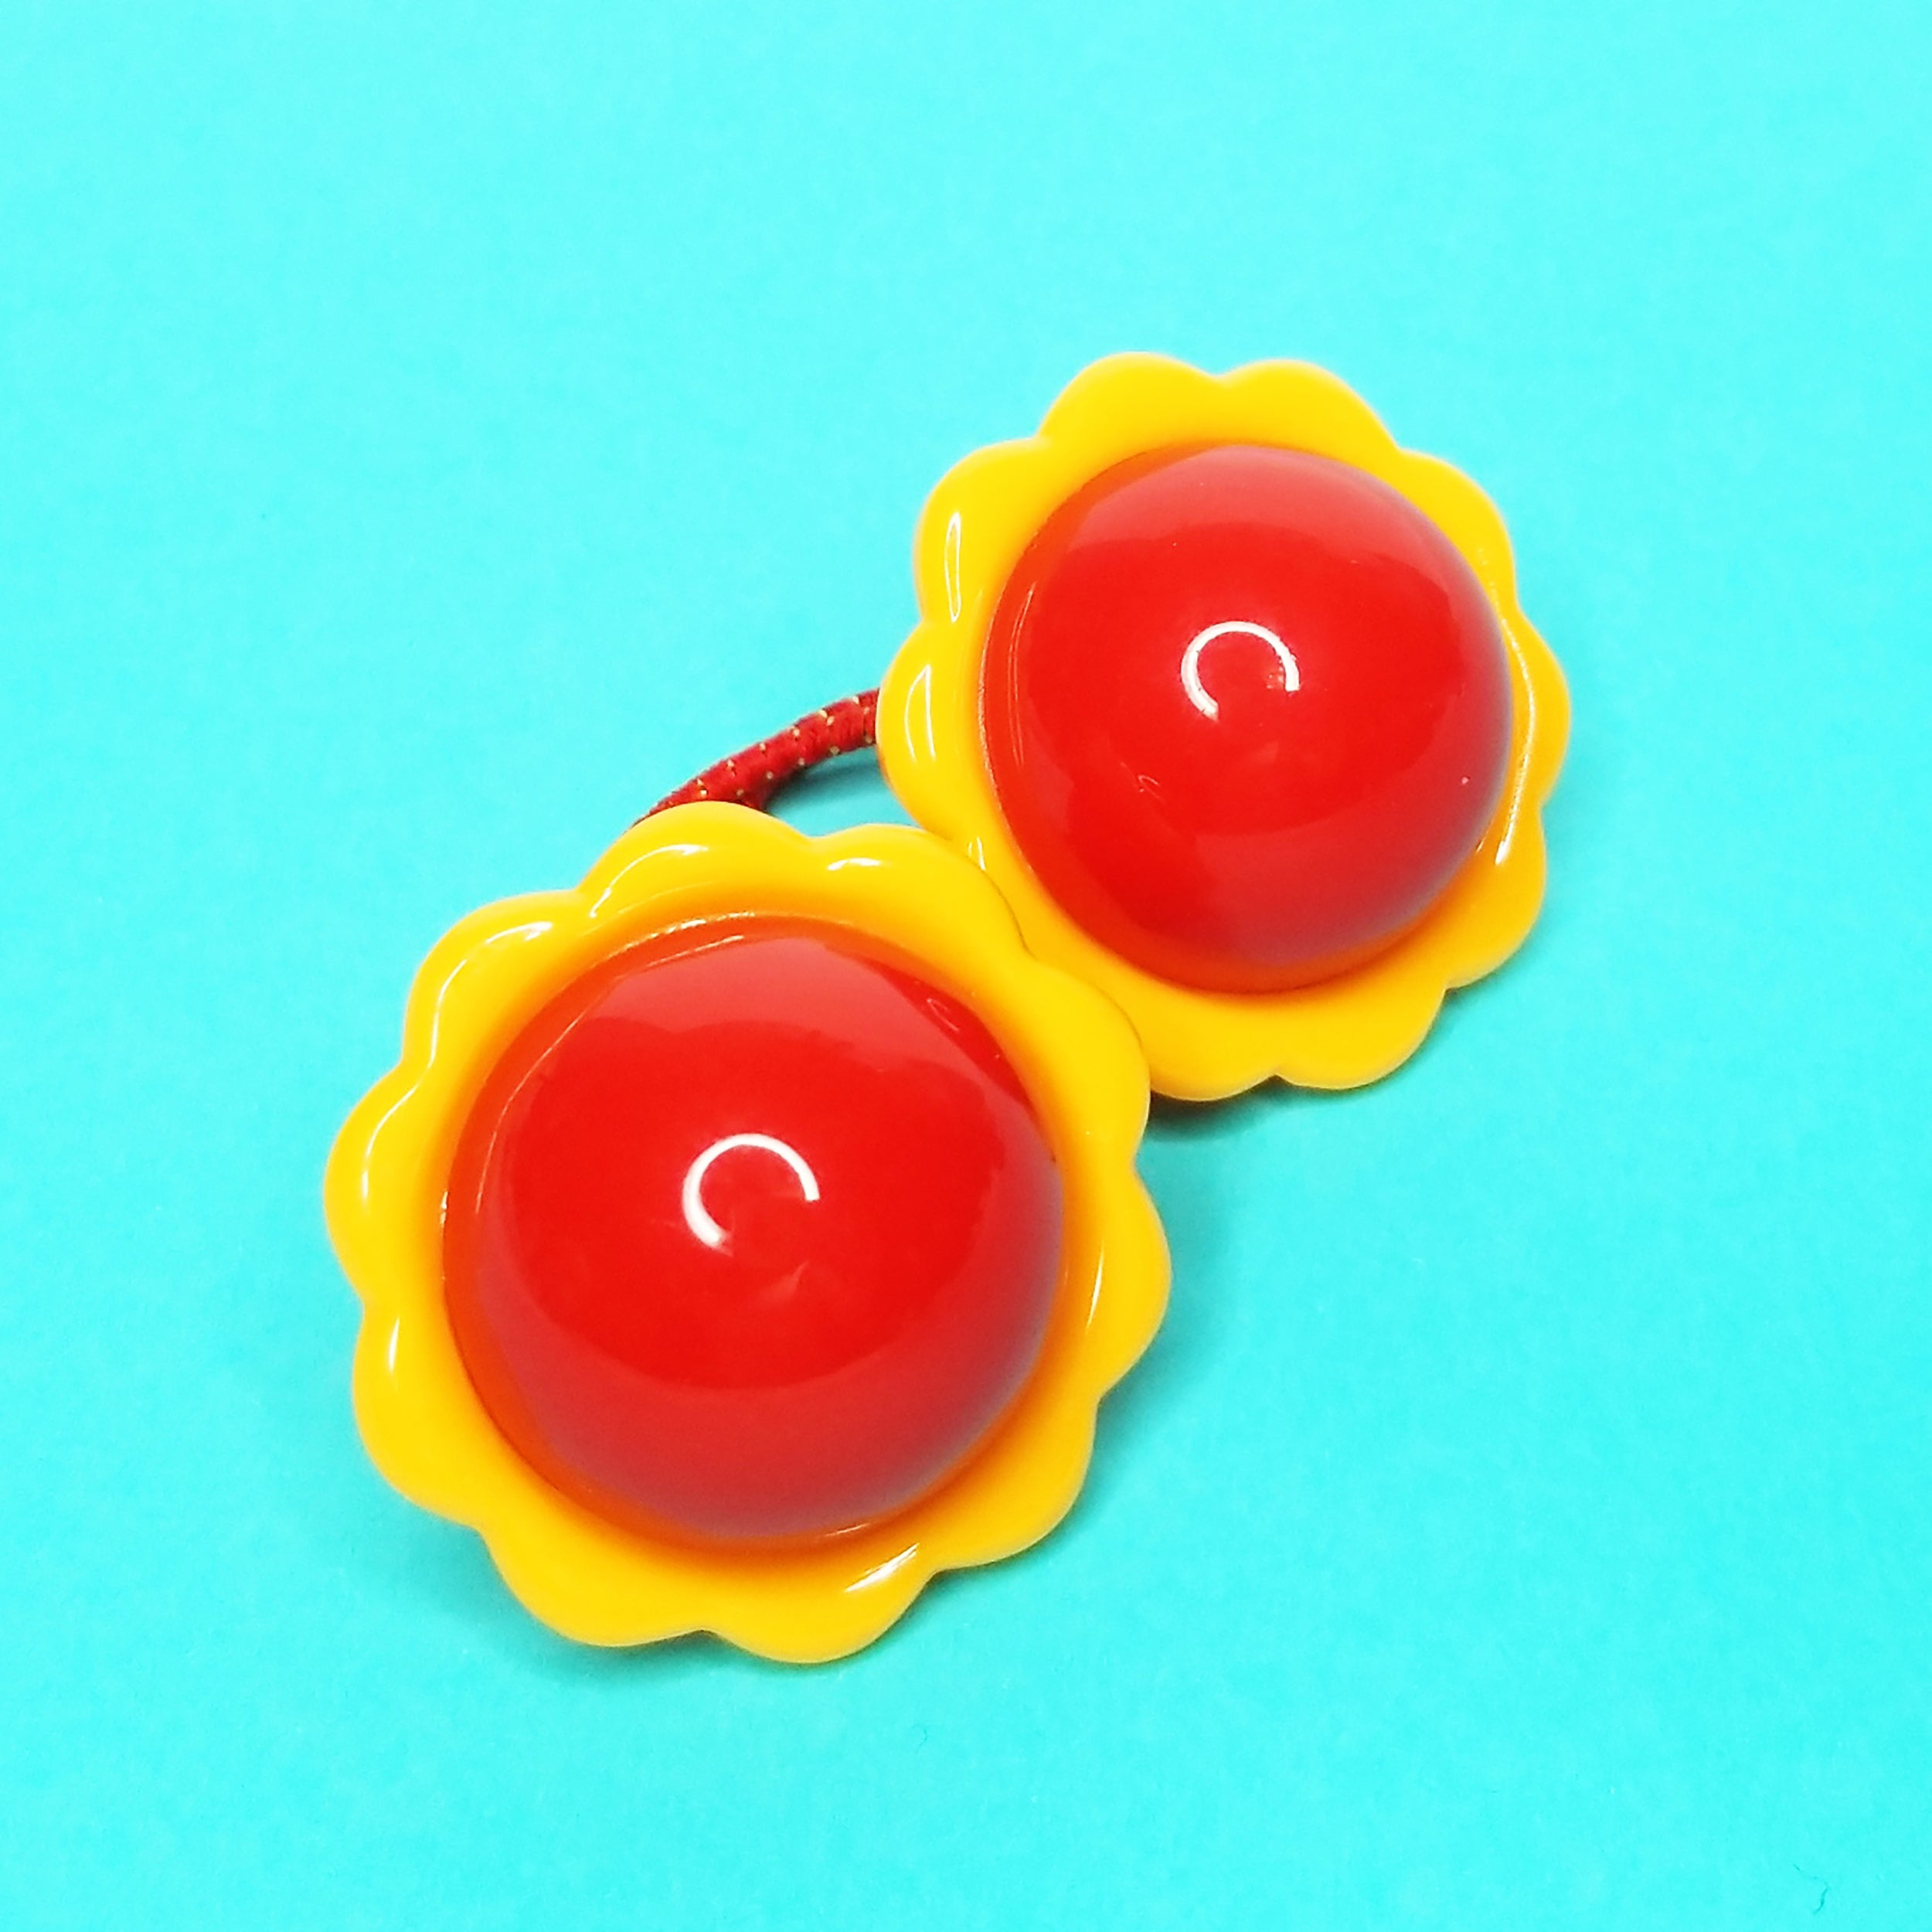 VINTAGE FLOWER POWER PONYTAIL HAIR BOBBLES - RED/YELLOW